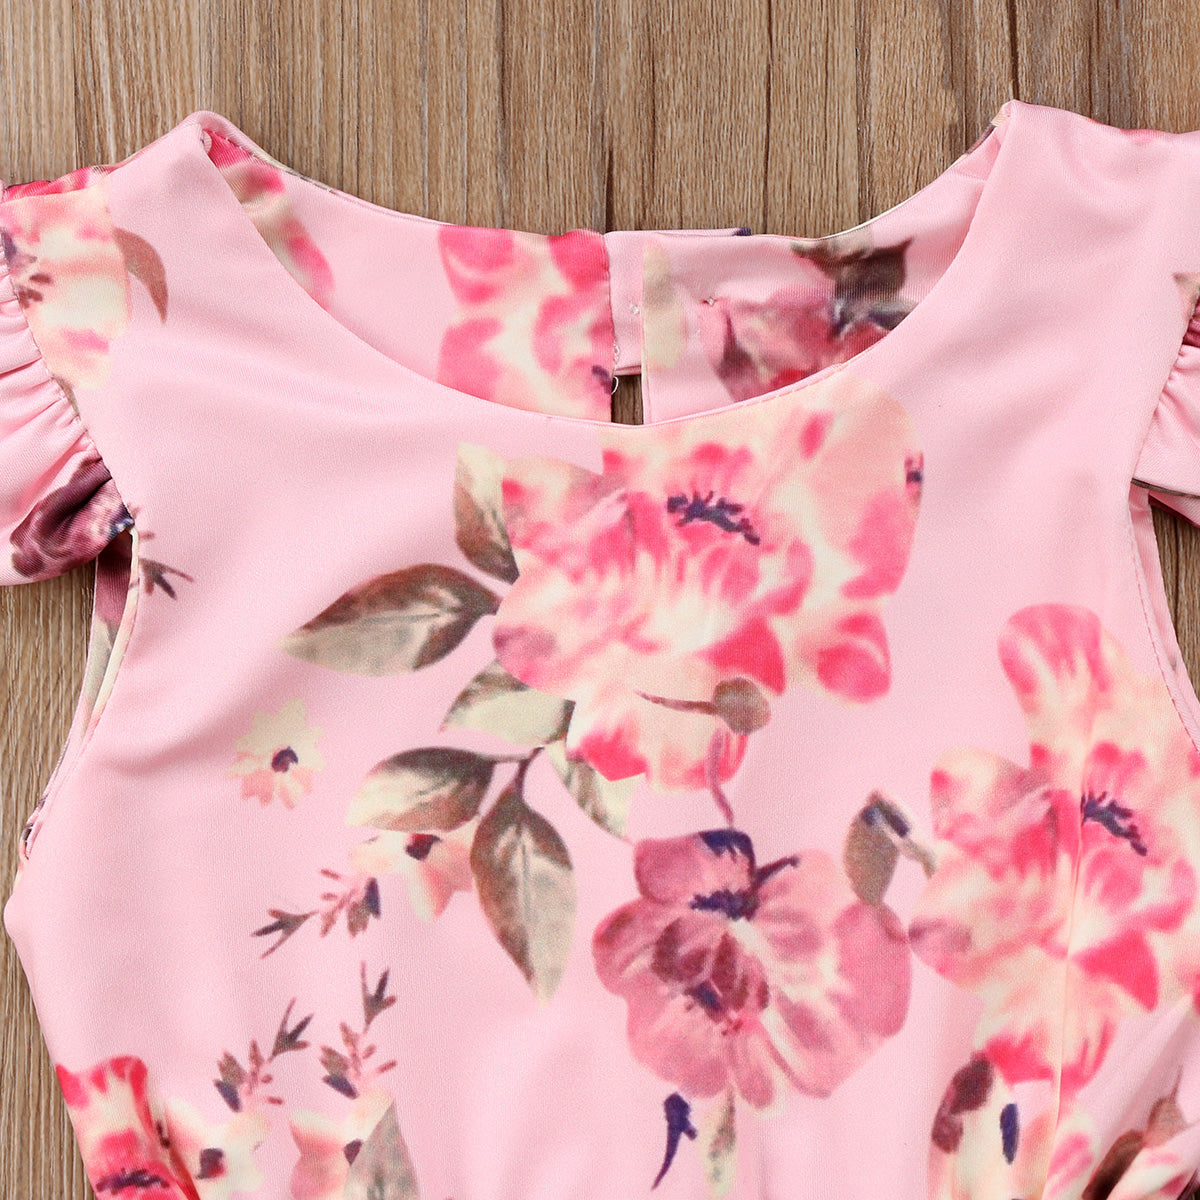 Headband 2Pcs Floral Printed Sleeveless Jumpsuit Outfits Summer Clothes Fyhuzp Infant Baby Girls Romper